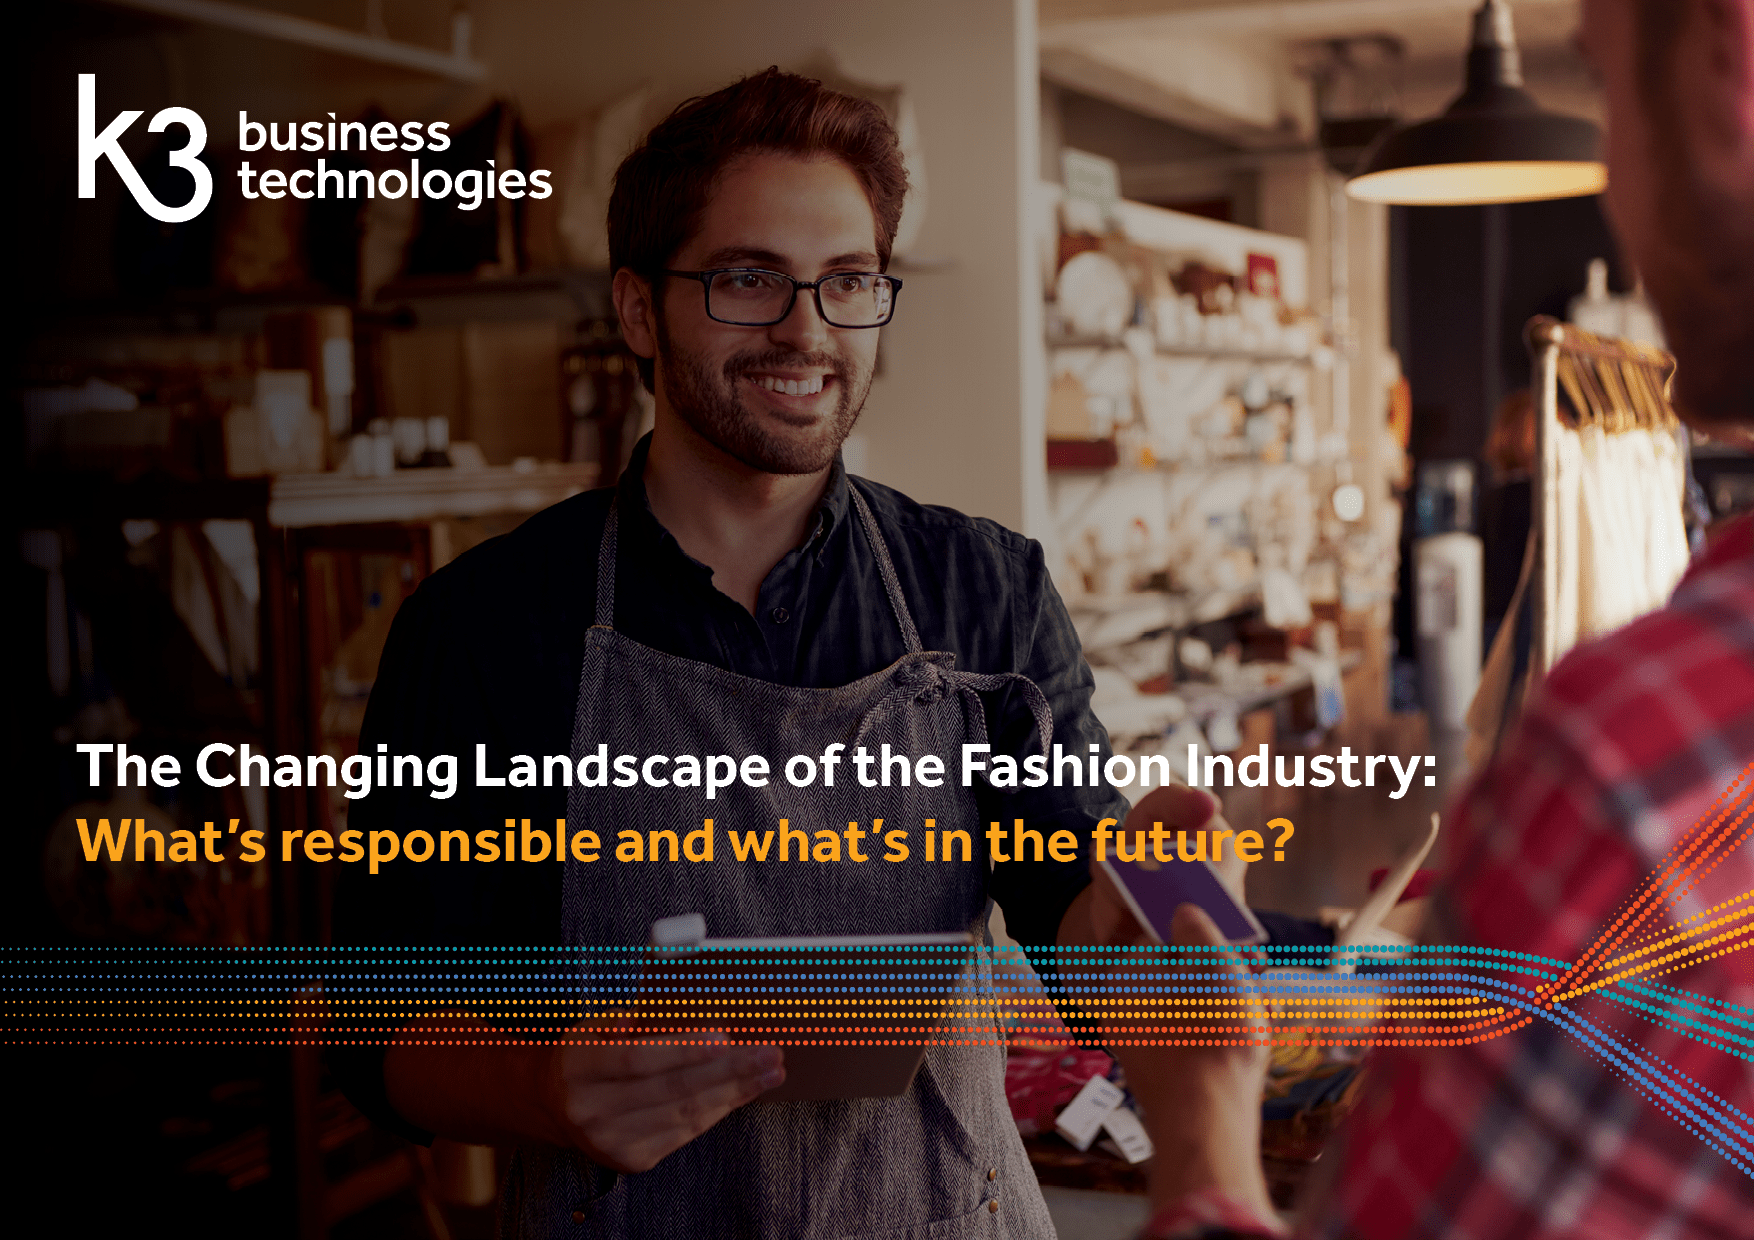 The Changing Landscape of Fashion Industry